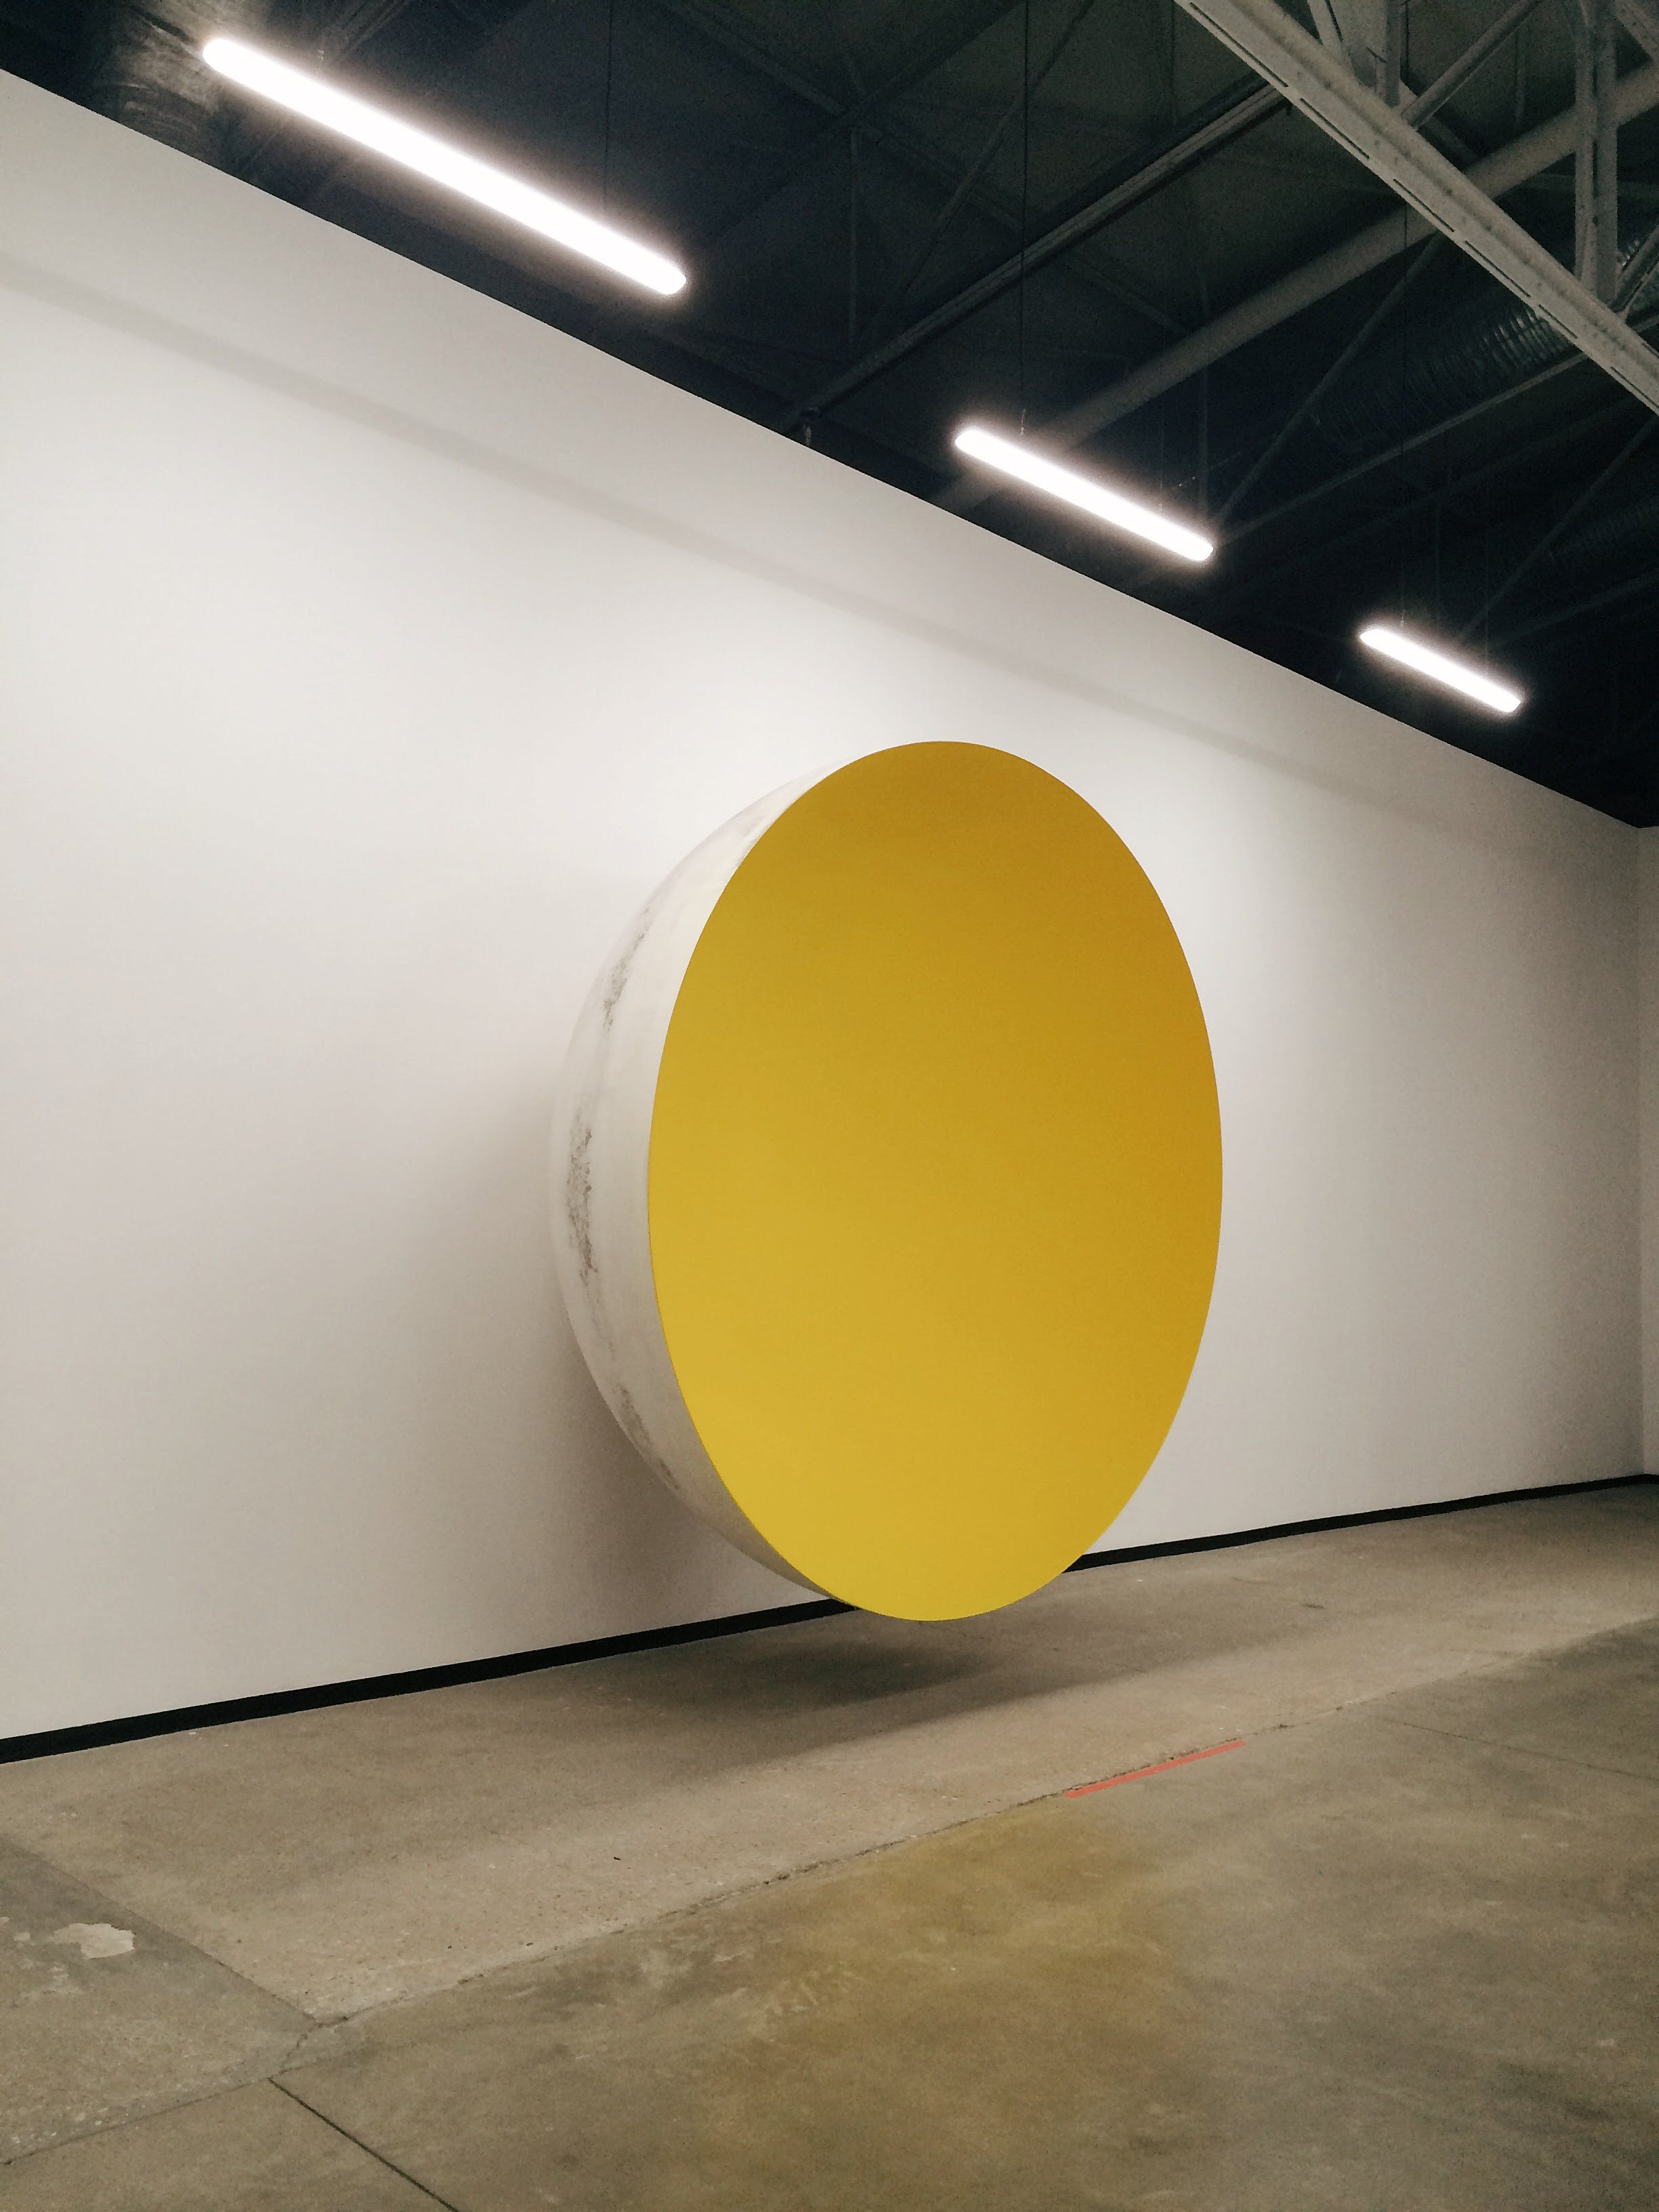 Yellow and White Bowl on Wall